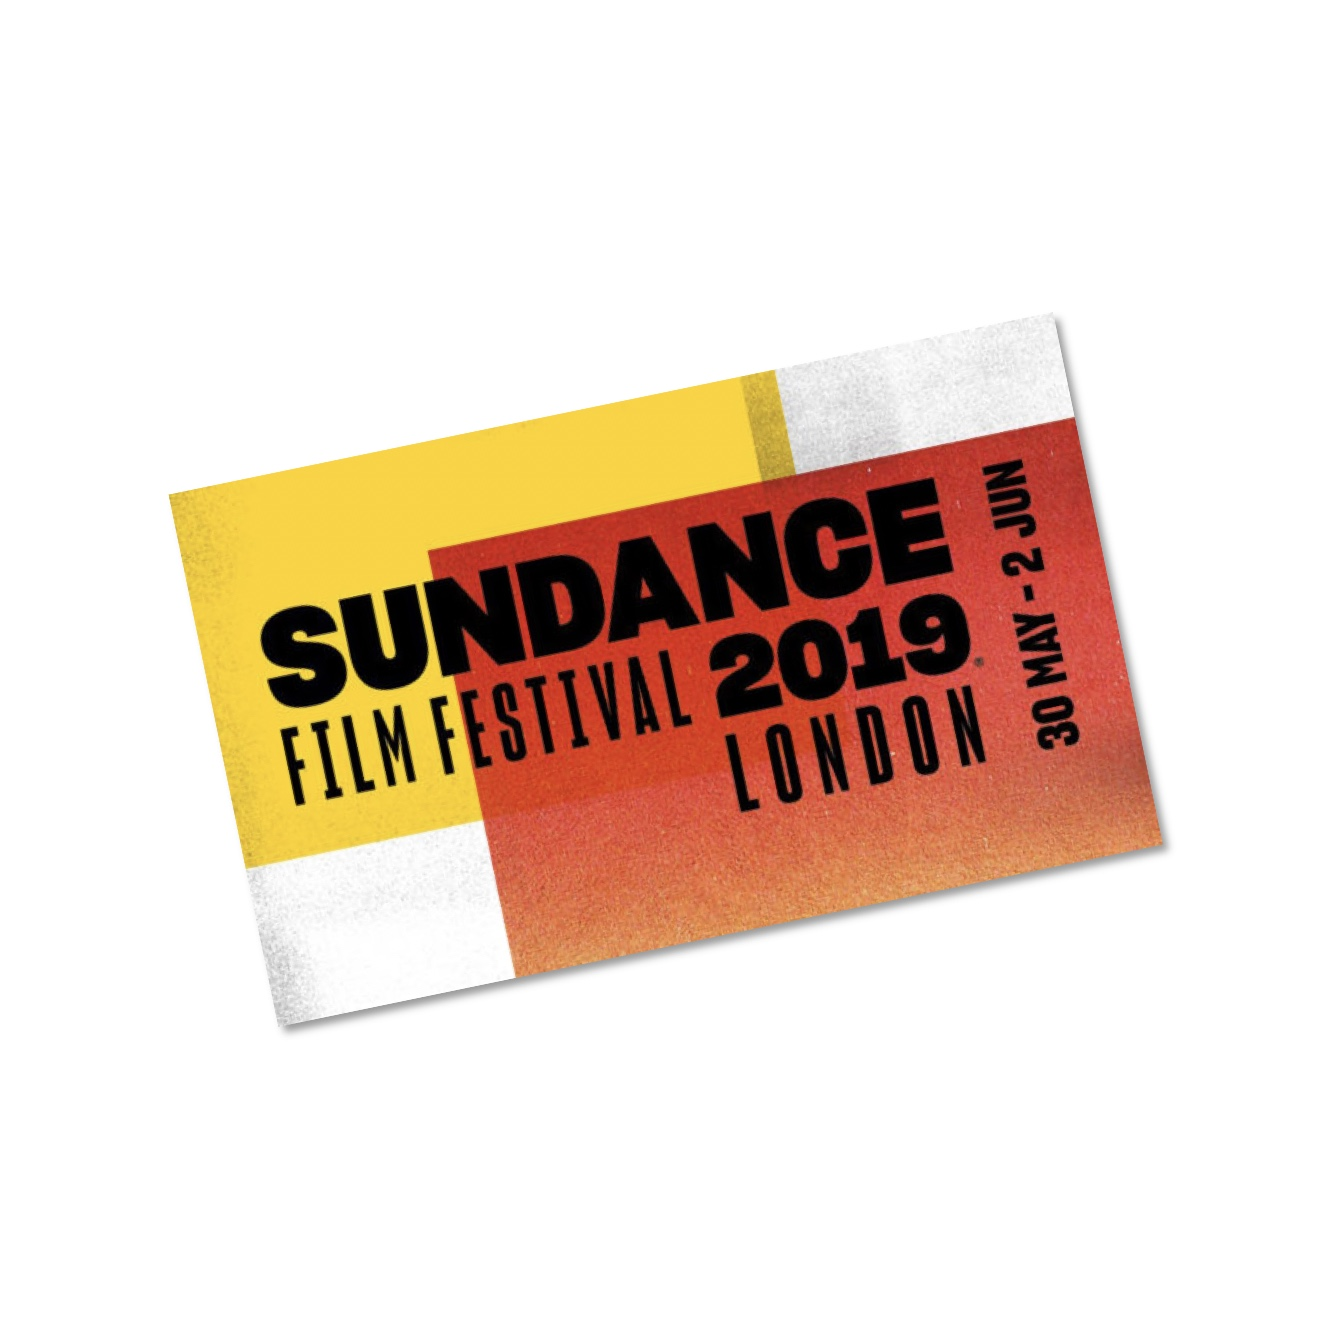 Showcase Sundance